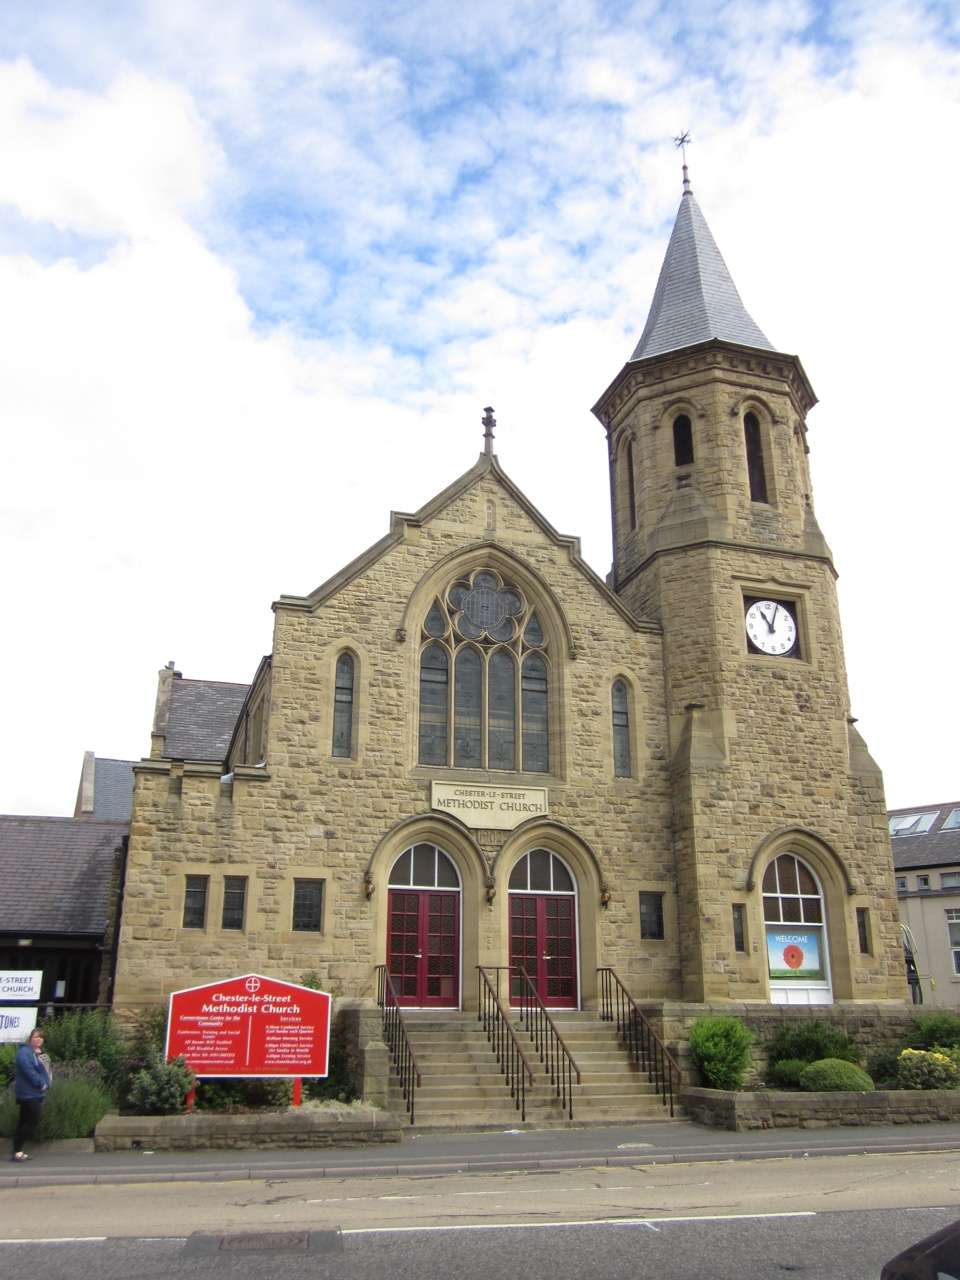 Methodist Church, exterior view